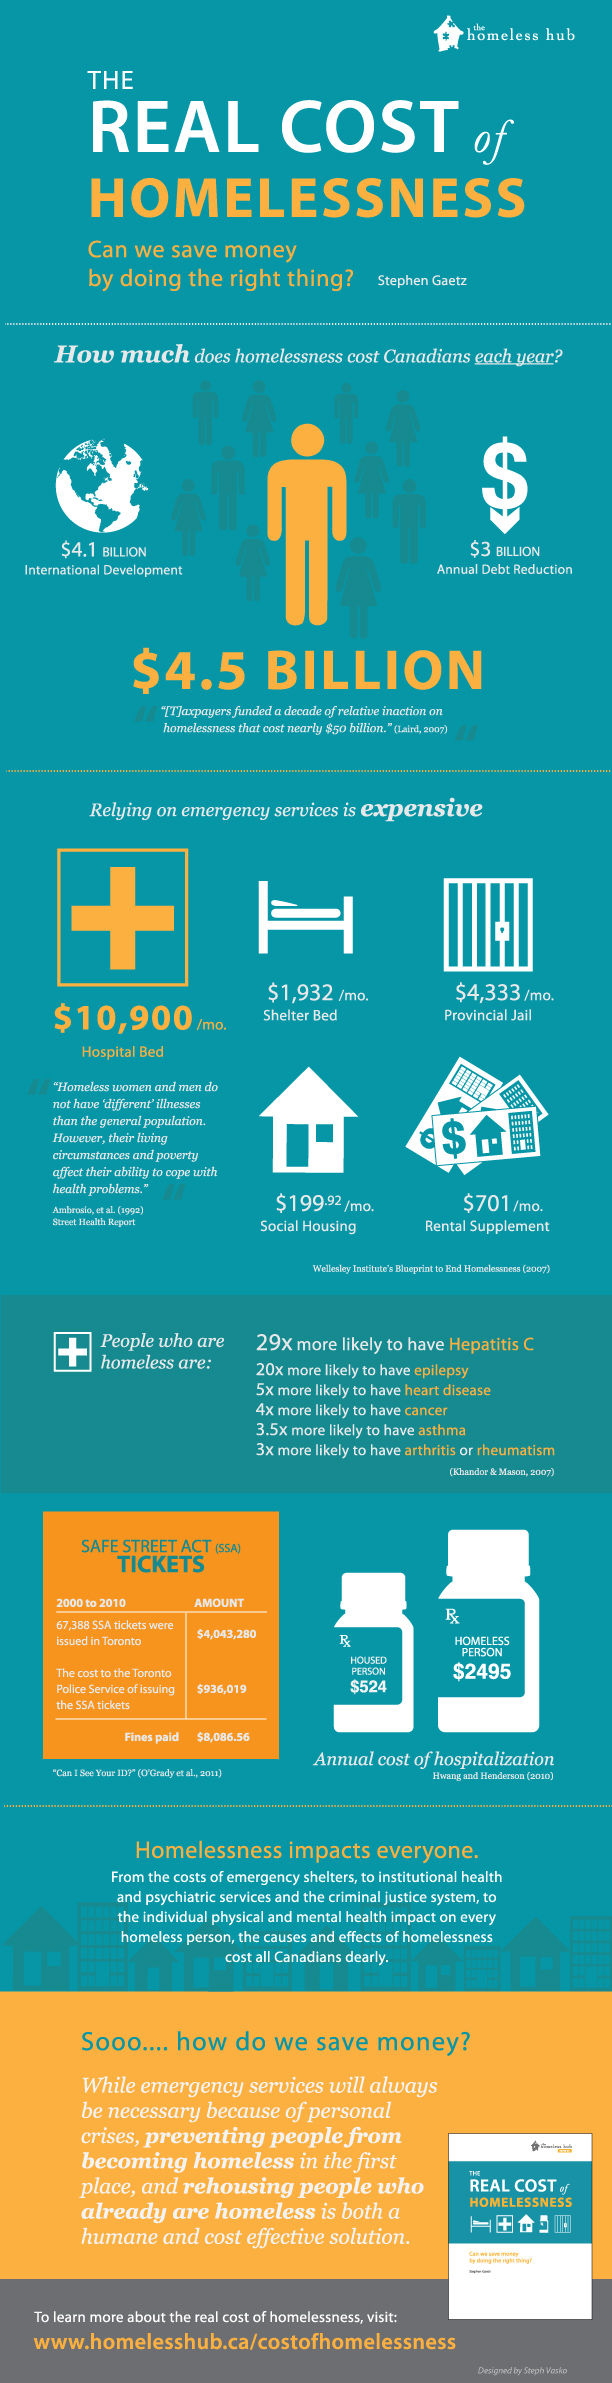 Cost of Homelessness infographic